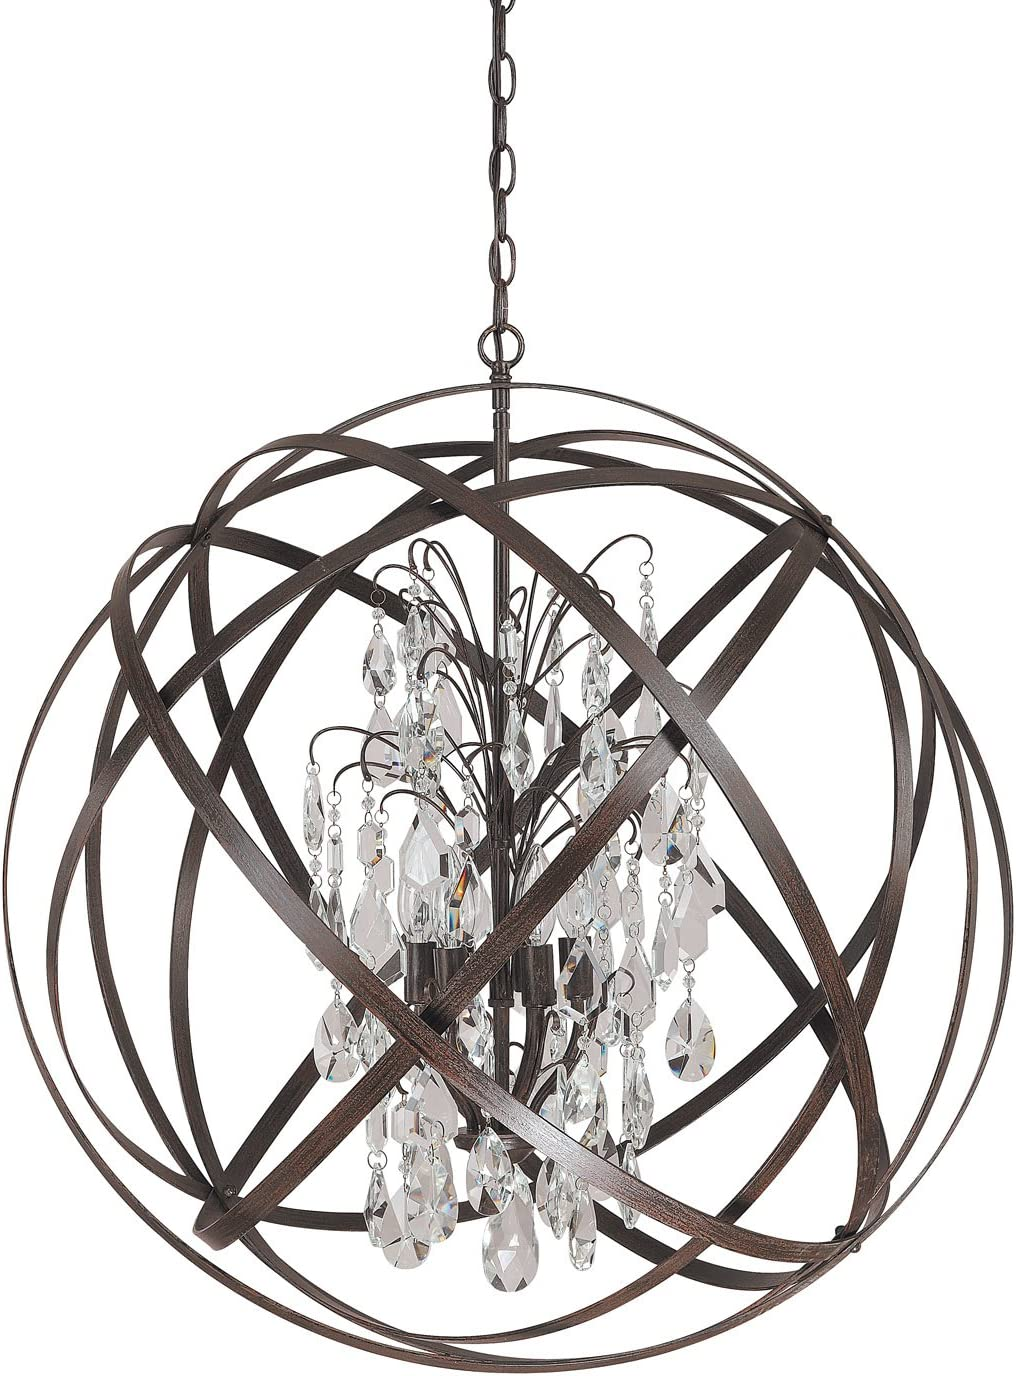 Capital Lighting 4236RS-CR Axis 6-Light Pendant, Russet Finish with Clear Crystal Accents